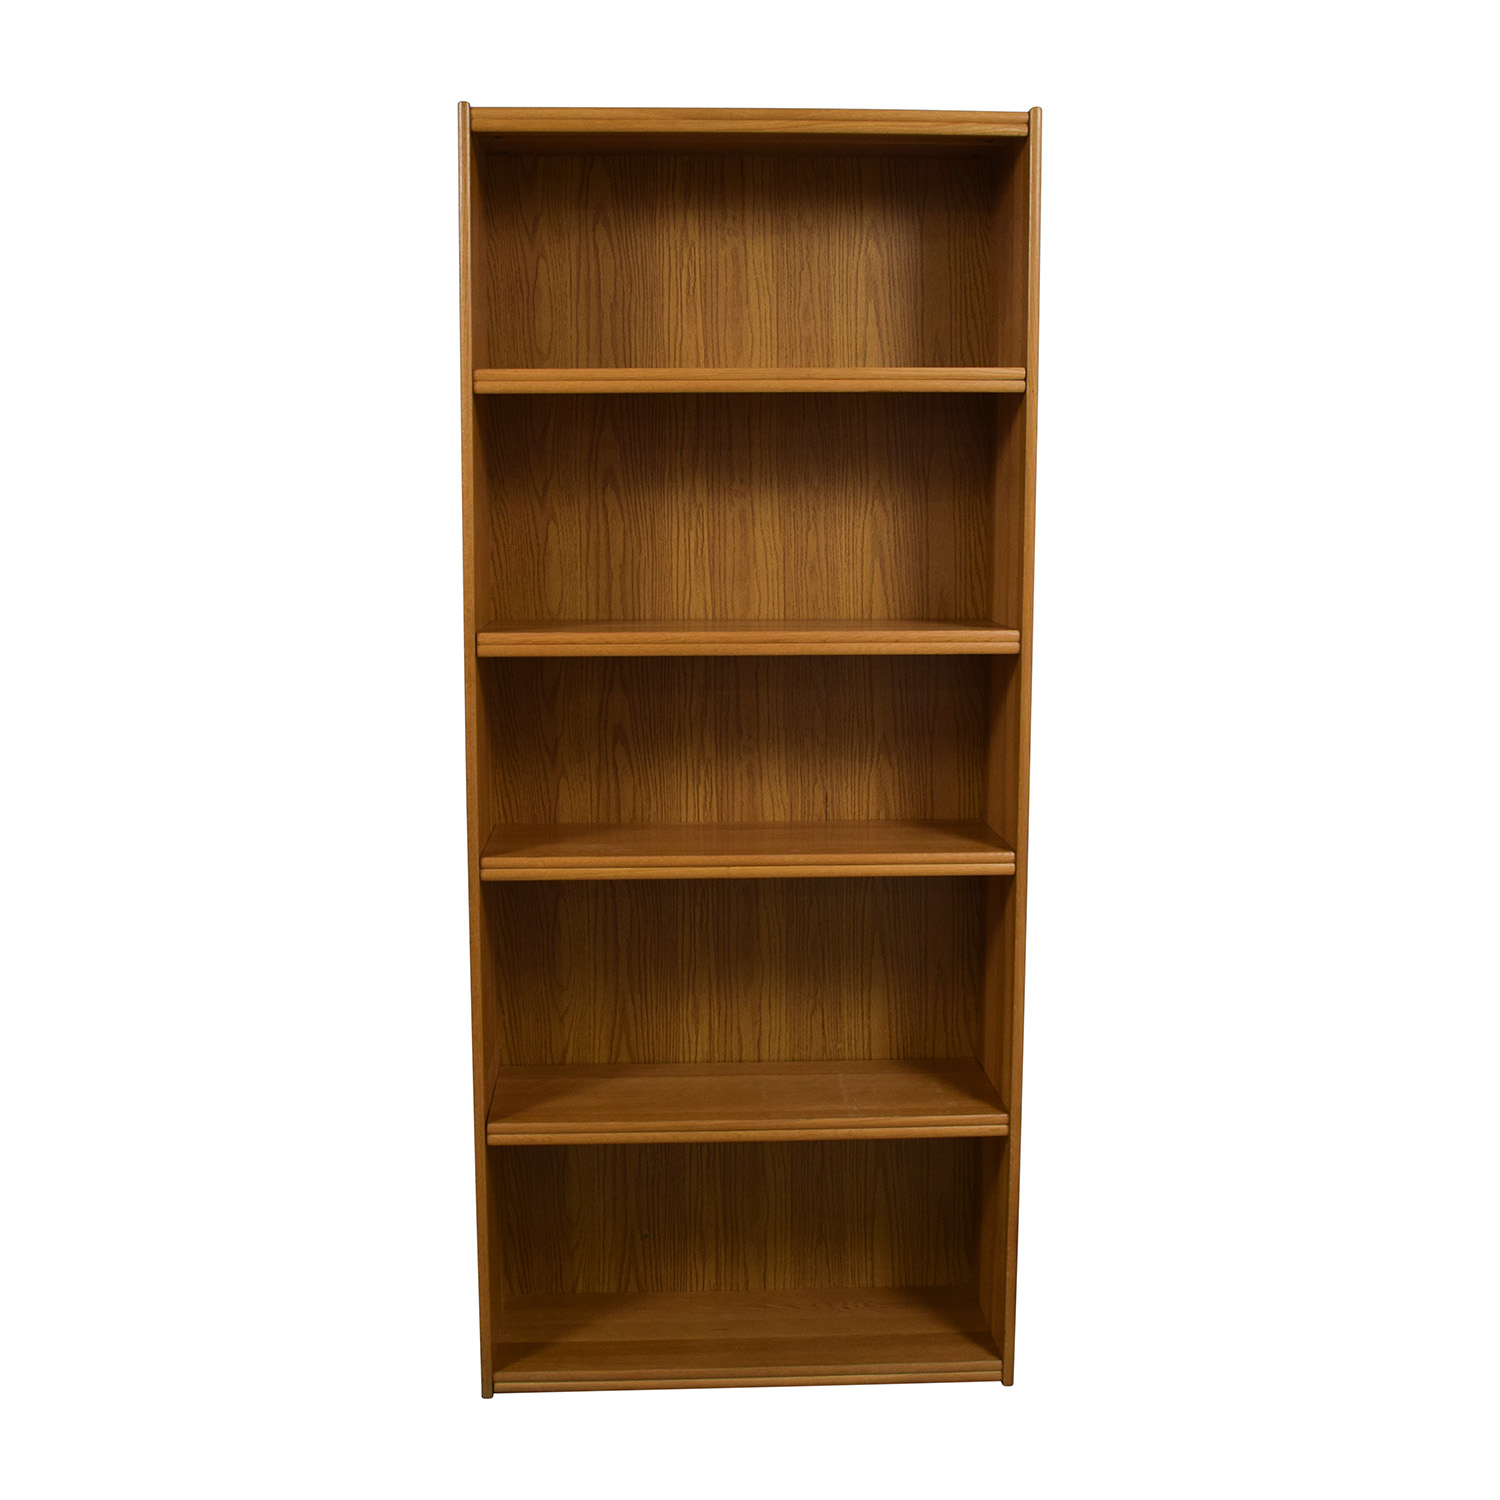 Tall Five Shelf Bookshelf sale